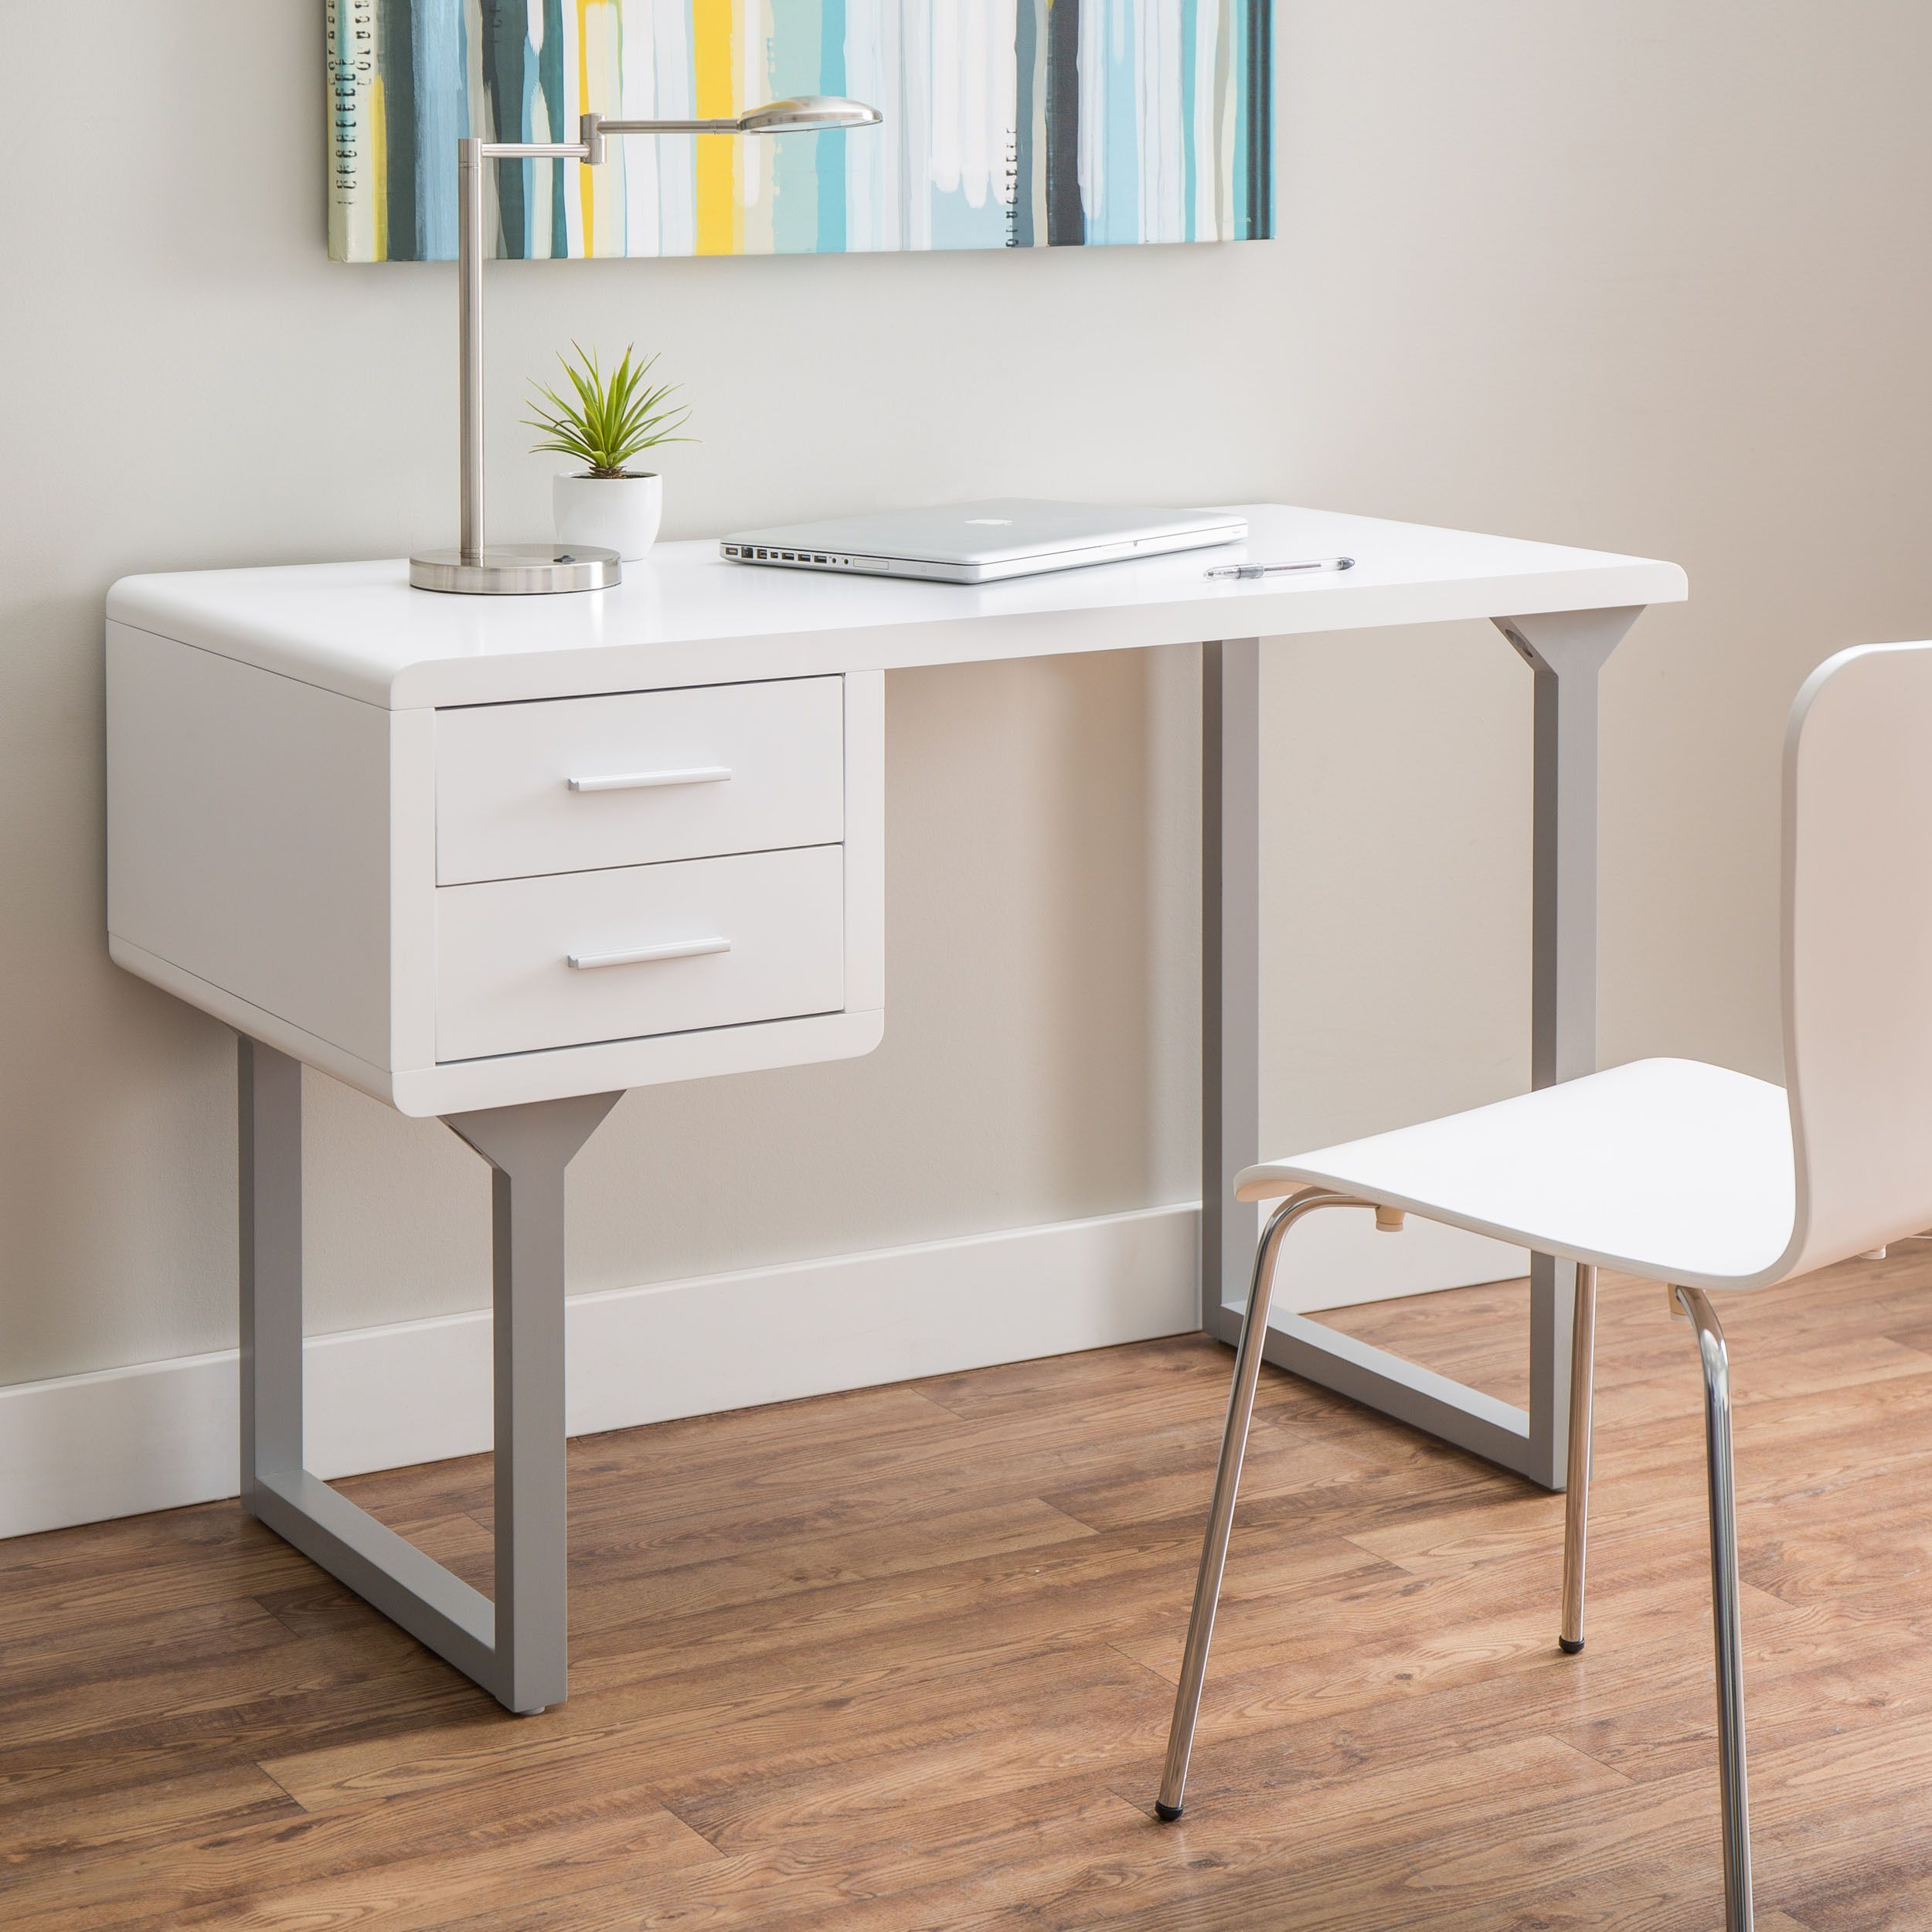 unique left desk ikea img bekant corner office encourage sit fice gray of stand white